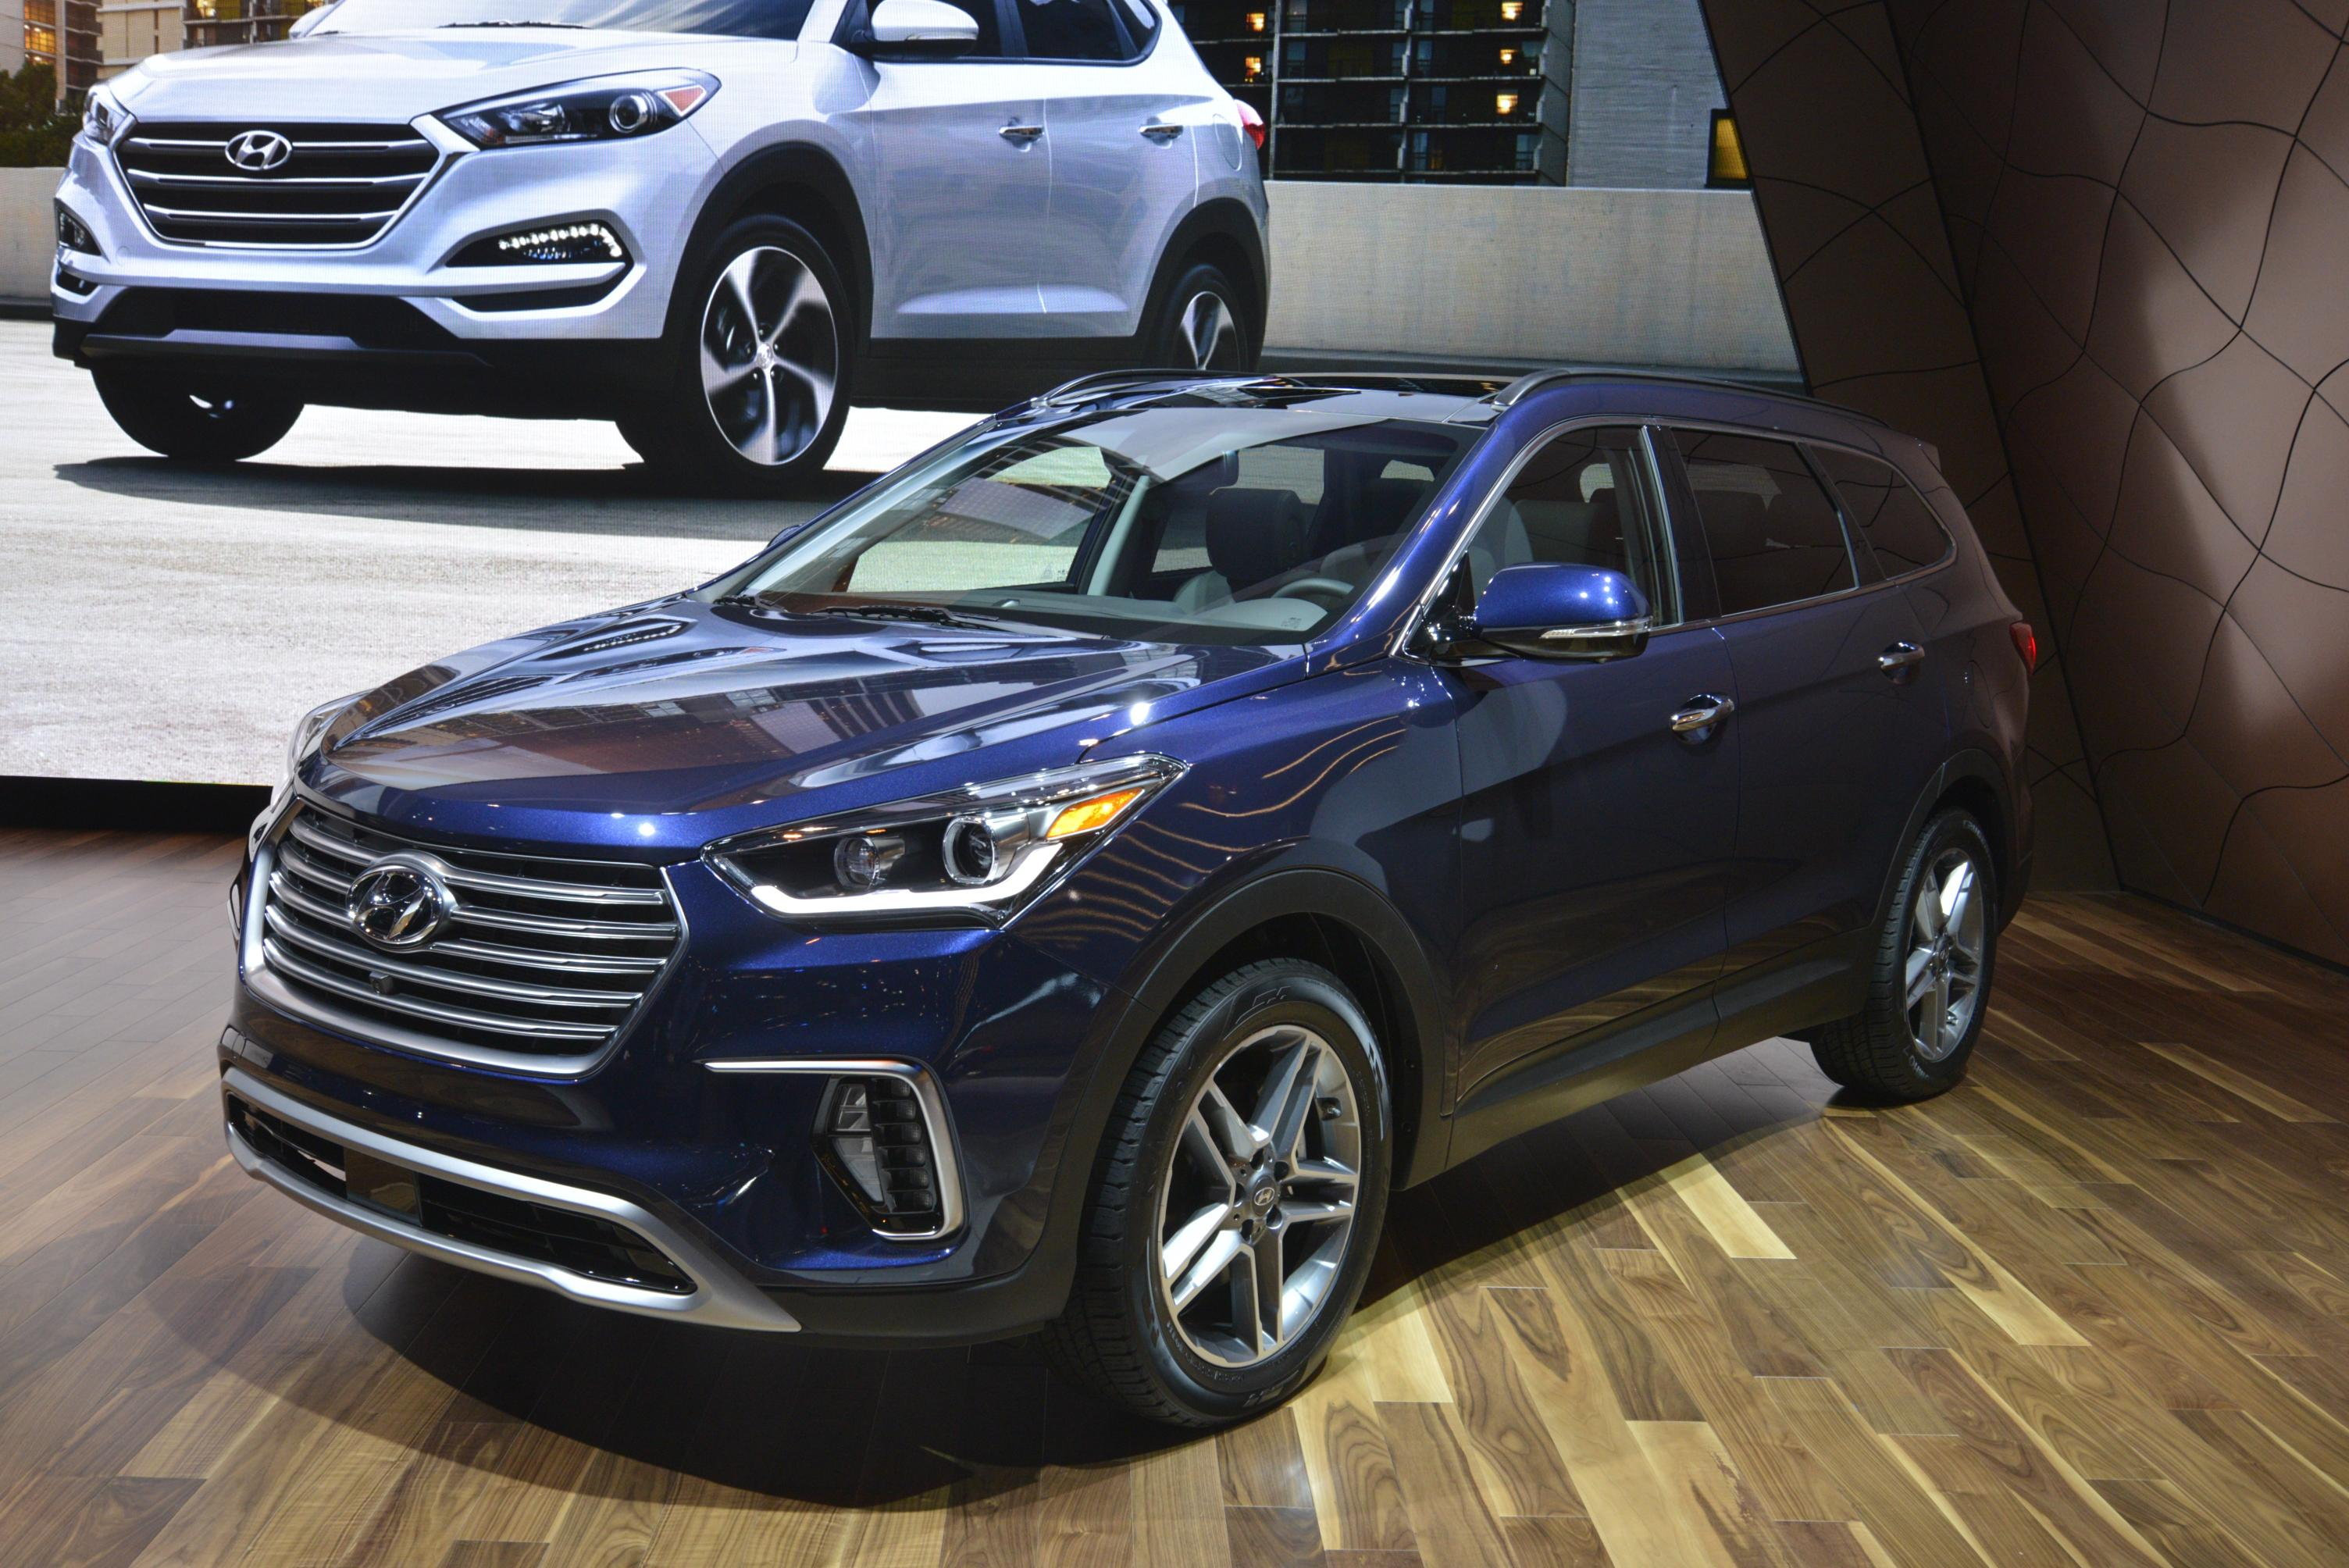 Active Auto Sales >> 2017 Hyundai Santa Fe Thinks It's Got a Sexy Facelift in Chicago - autoevolution